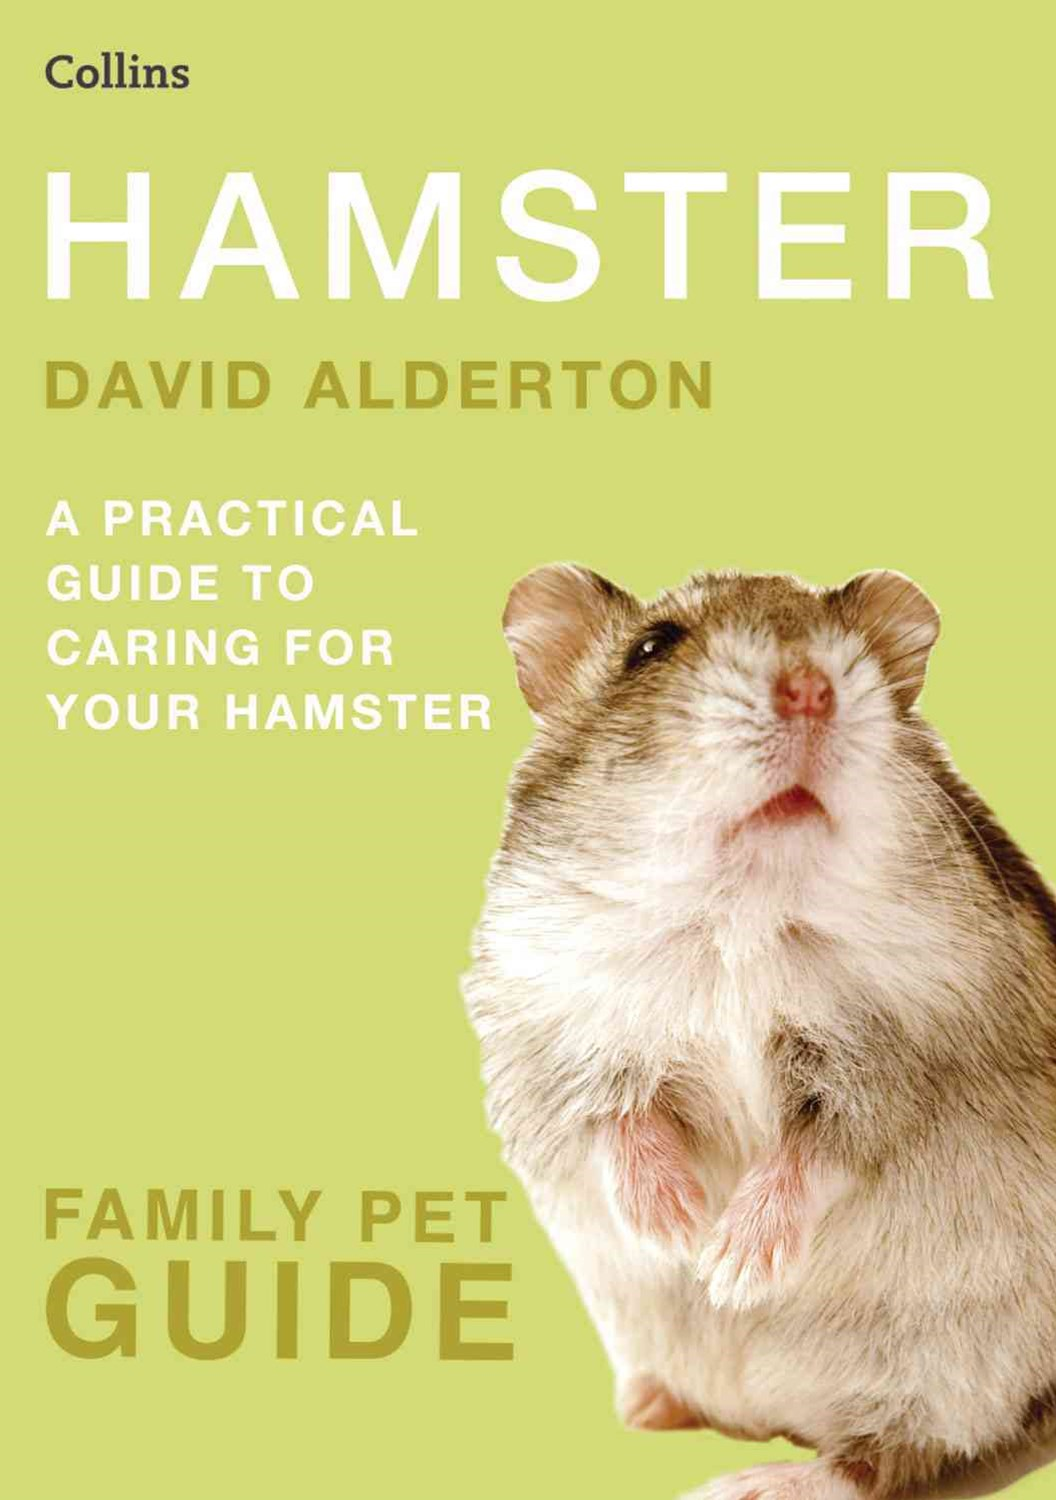 Collins Family Pet Guide - Hamster